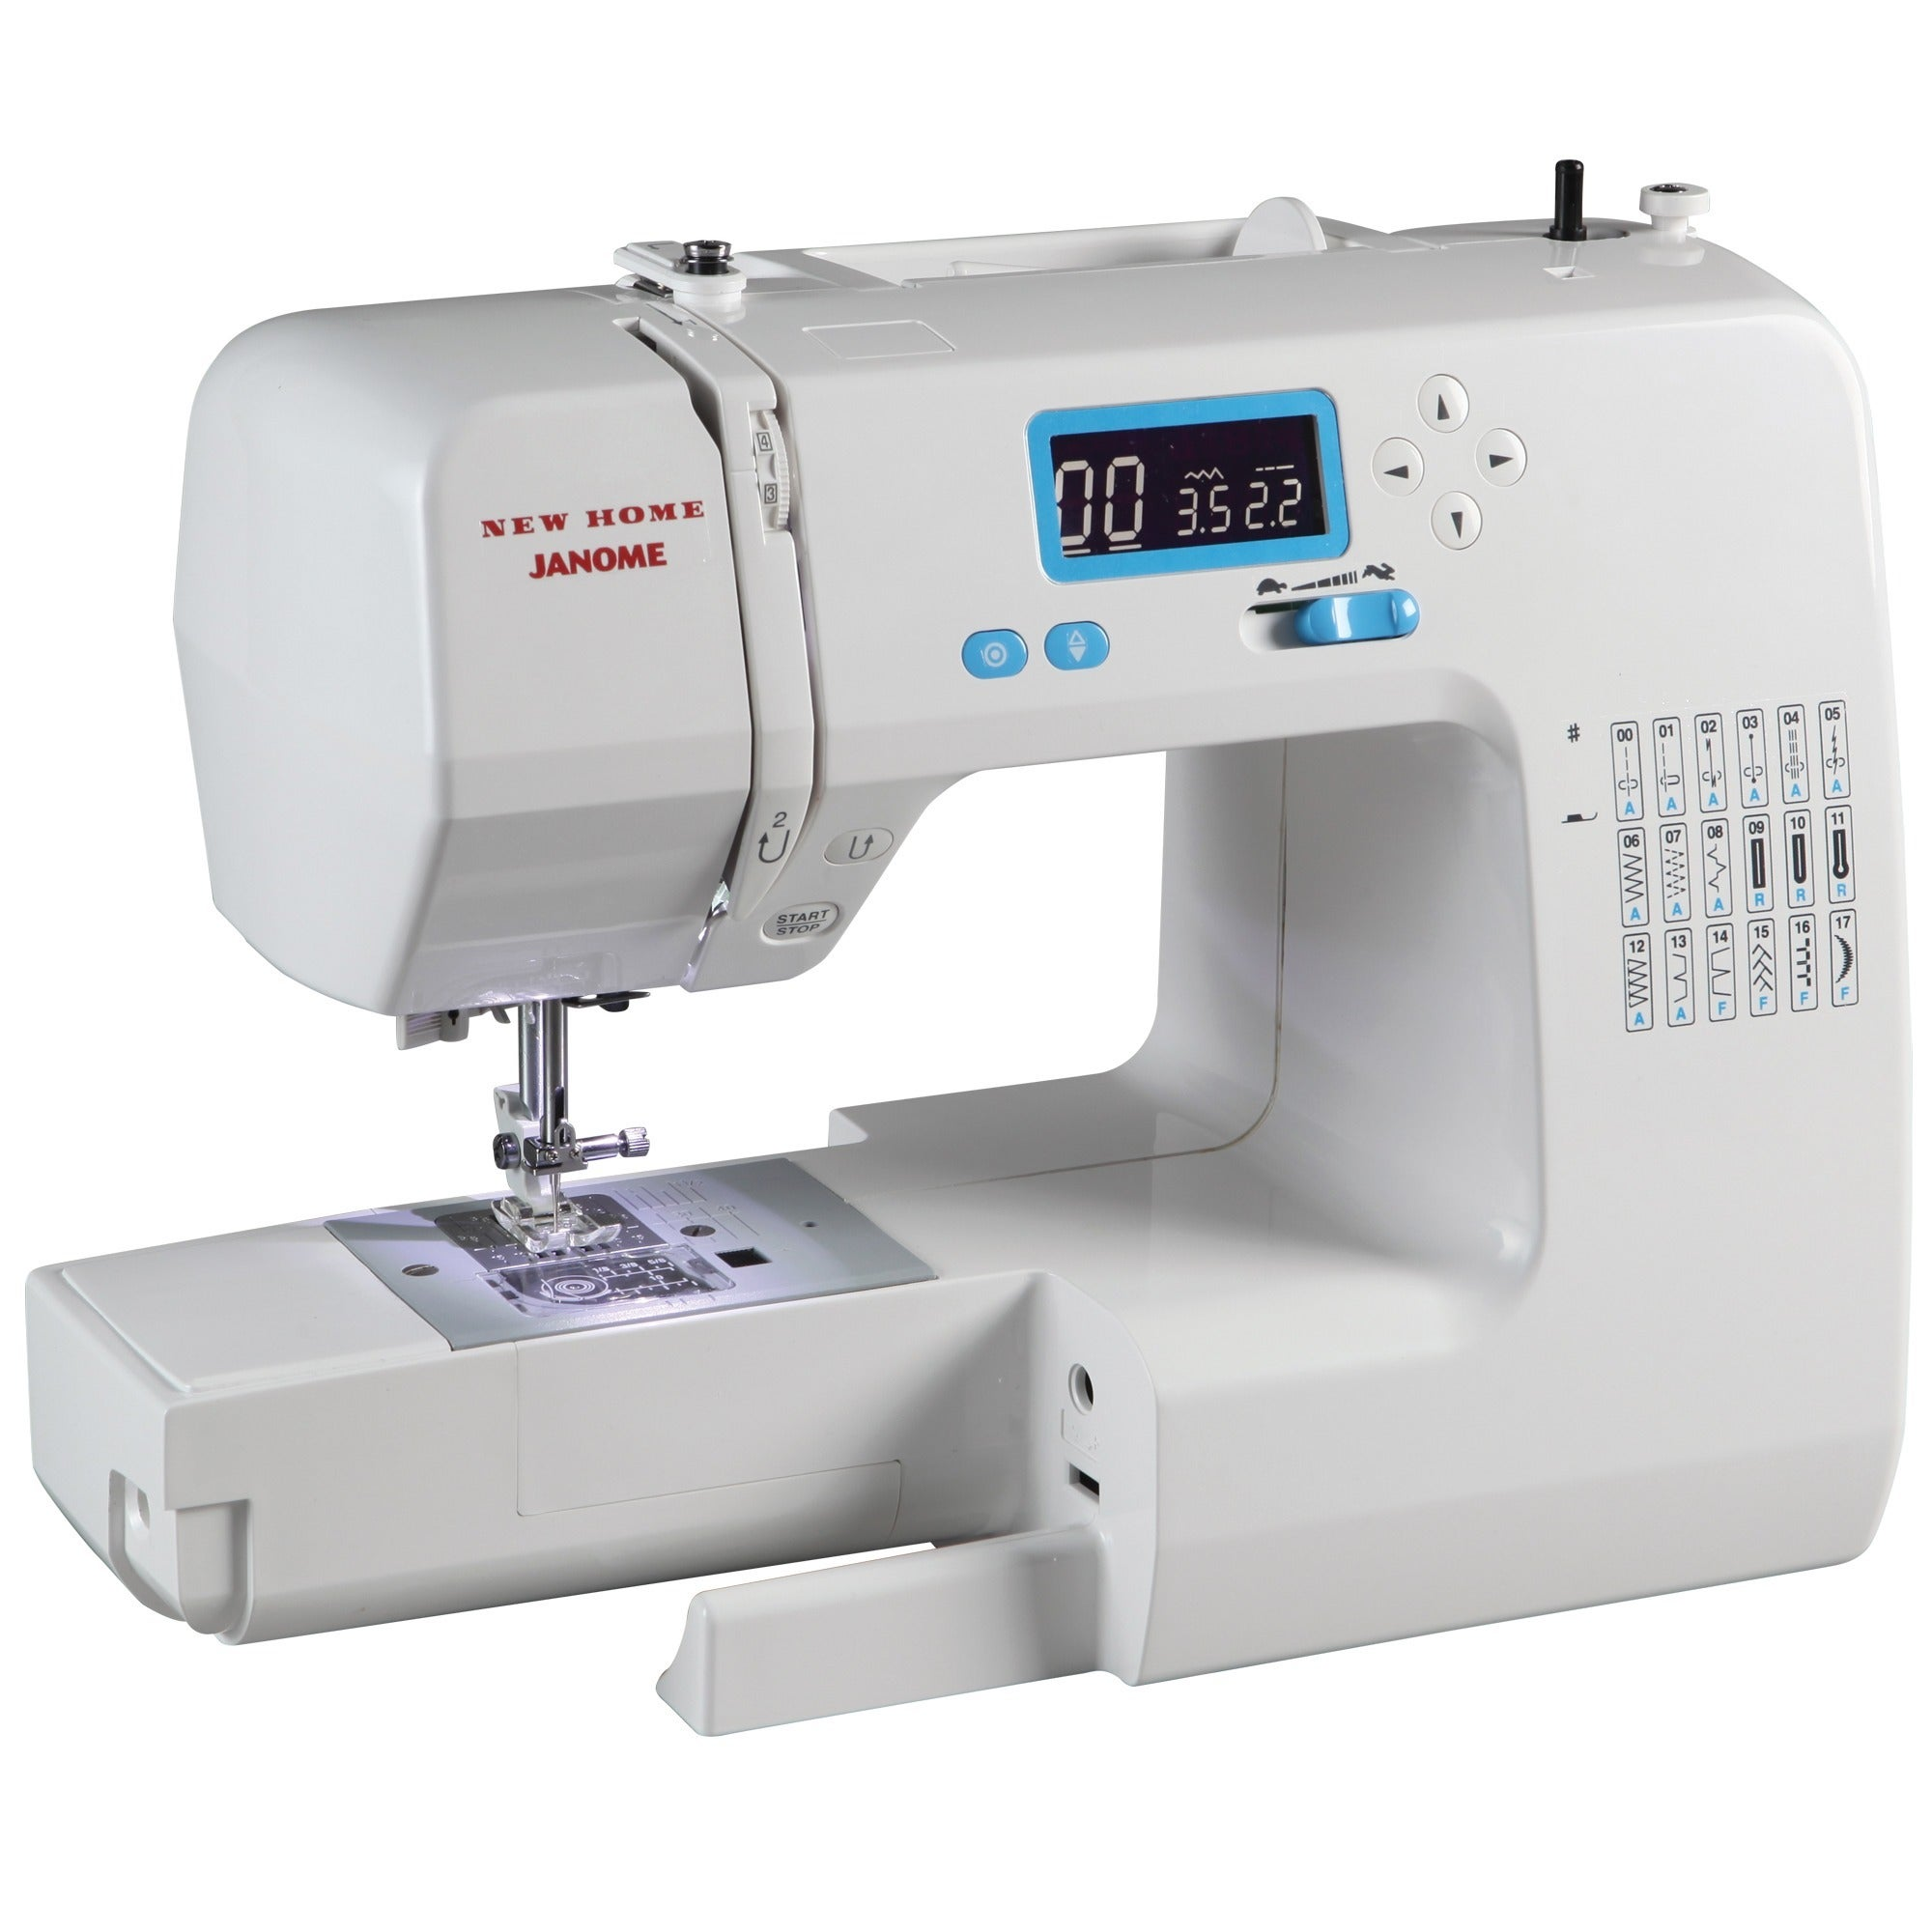 compare front machine shop embroidery category quilting atelier sewing quilt sew janome